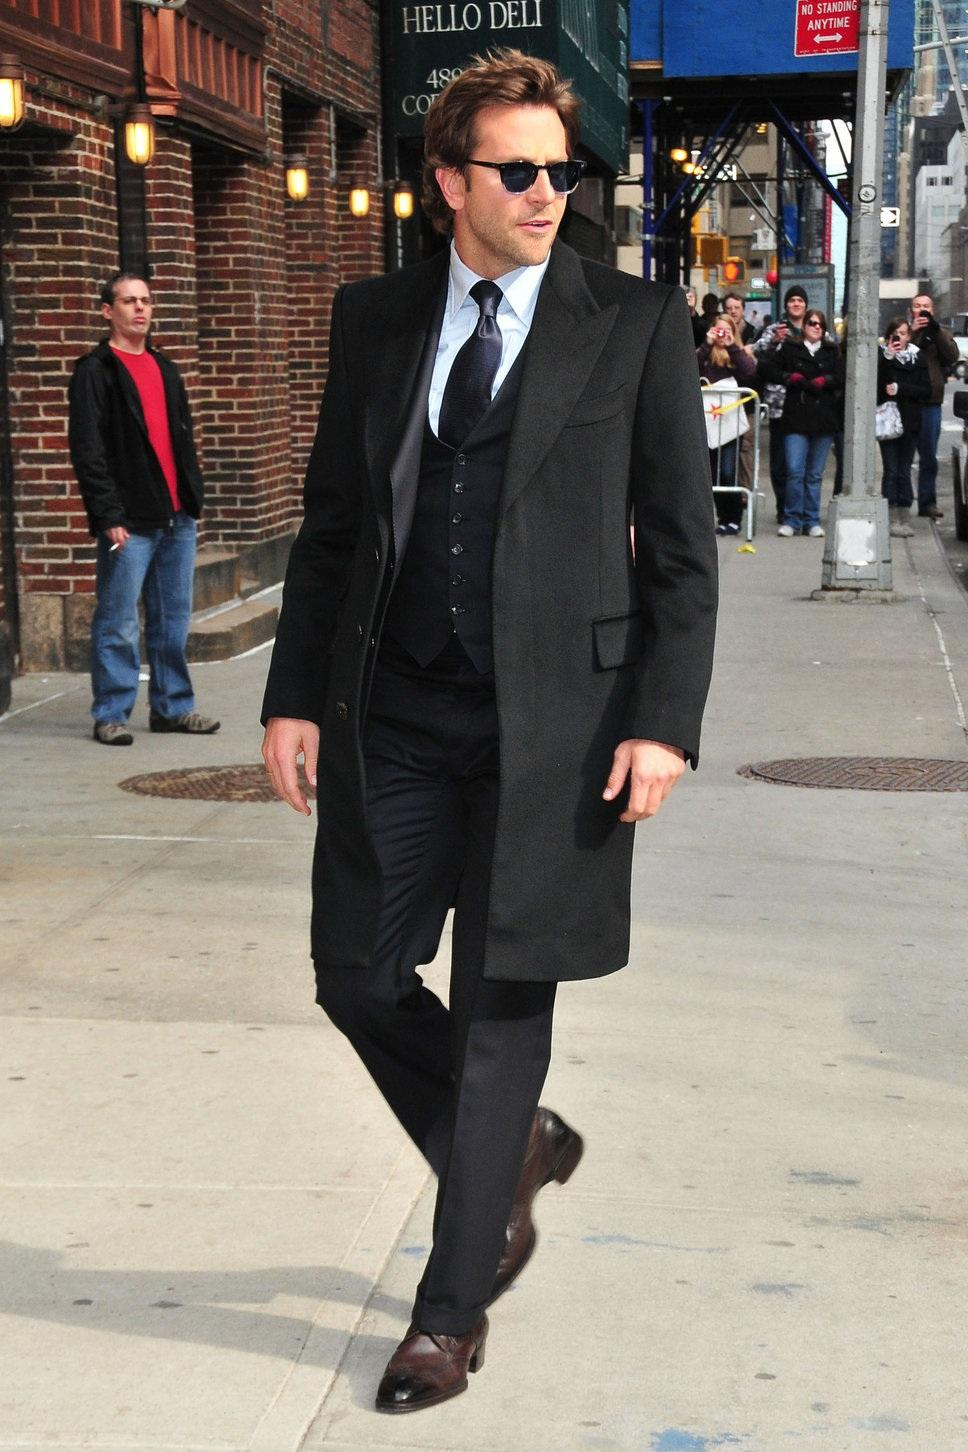 bradley-cooper-black-coat-sung-fashion-634378088.jpg